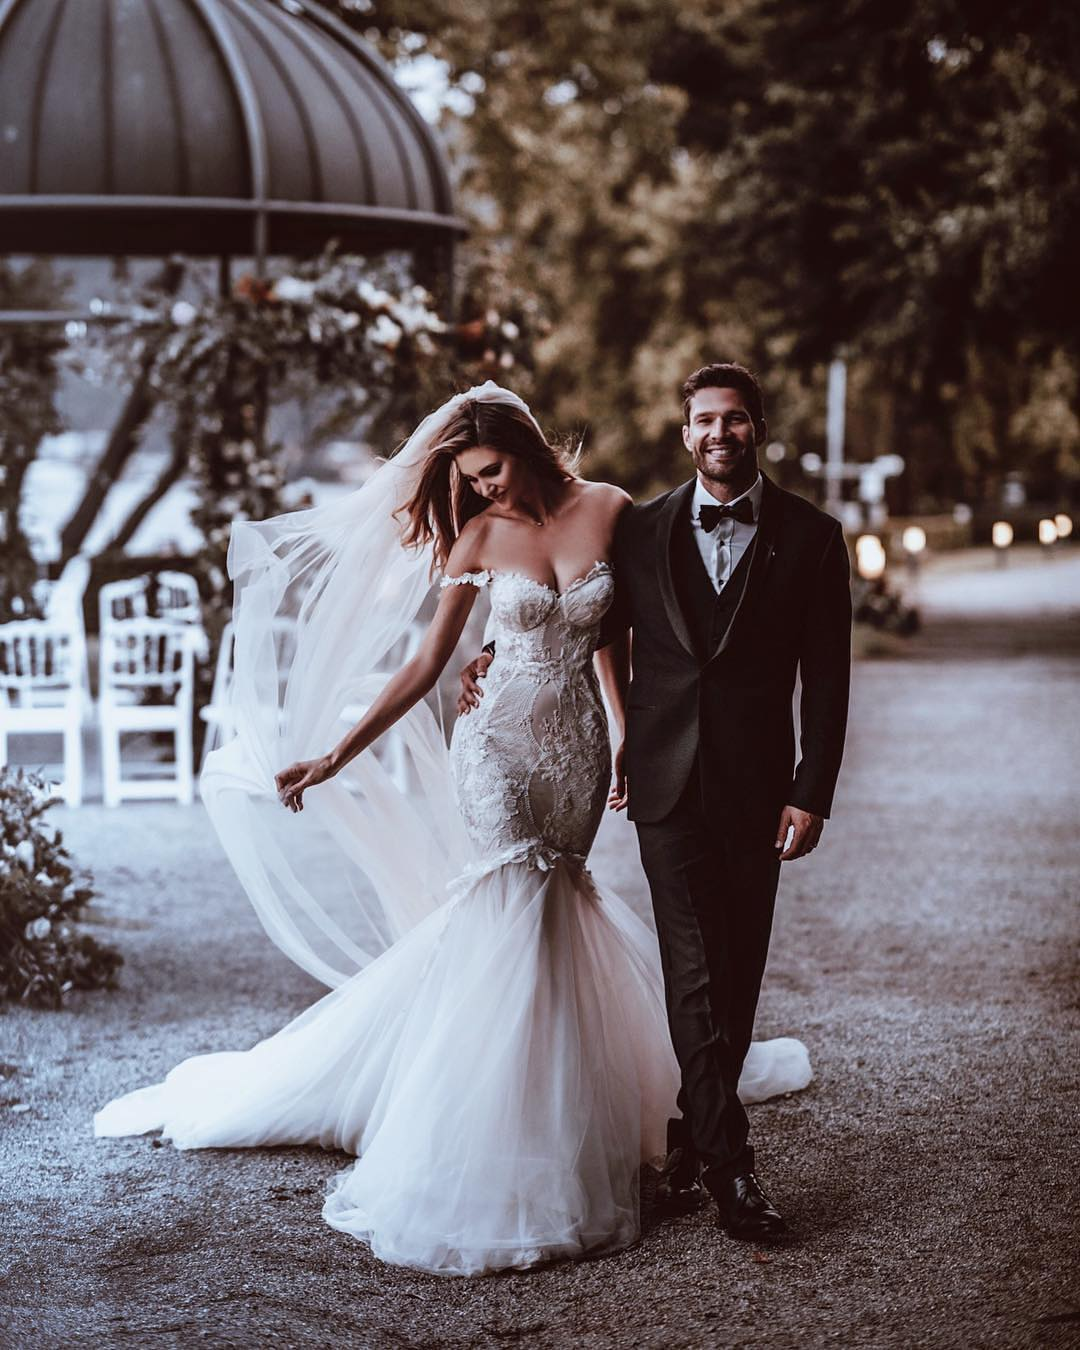 The Perfect Wedding Gown: From A Mermaid Wedding Dress To The Perfect Location, This